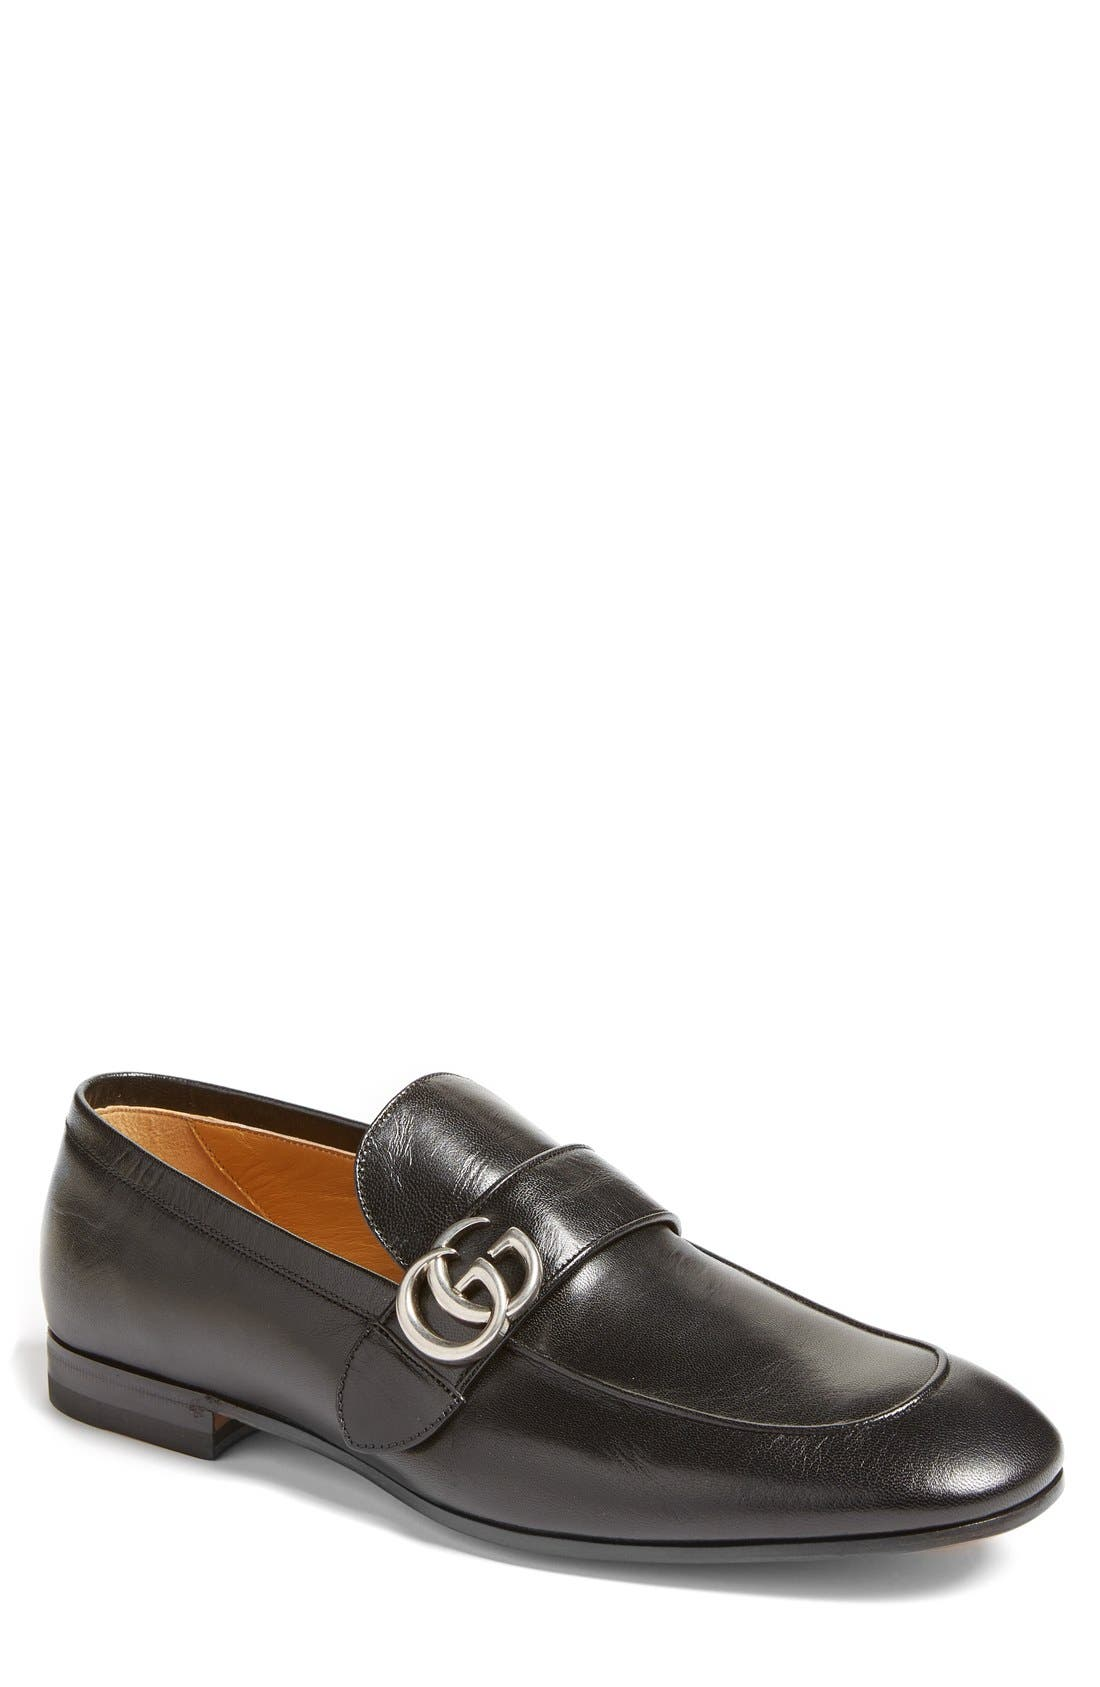 Donnie Bit Loafer,                         Main,                         color,